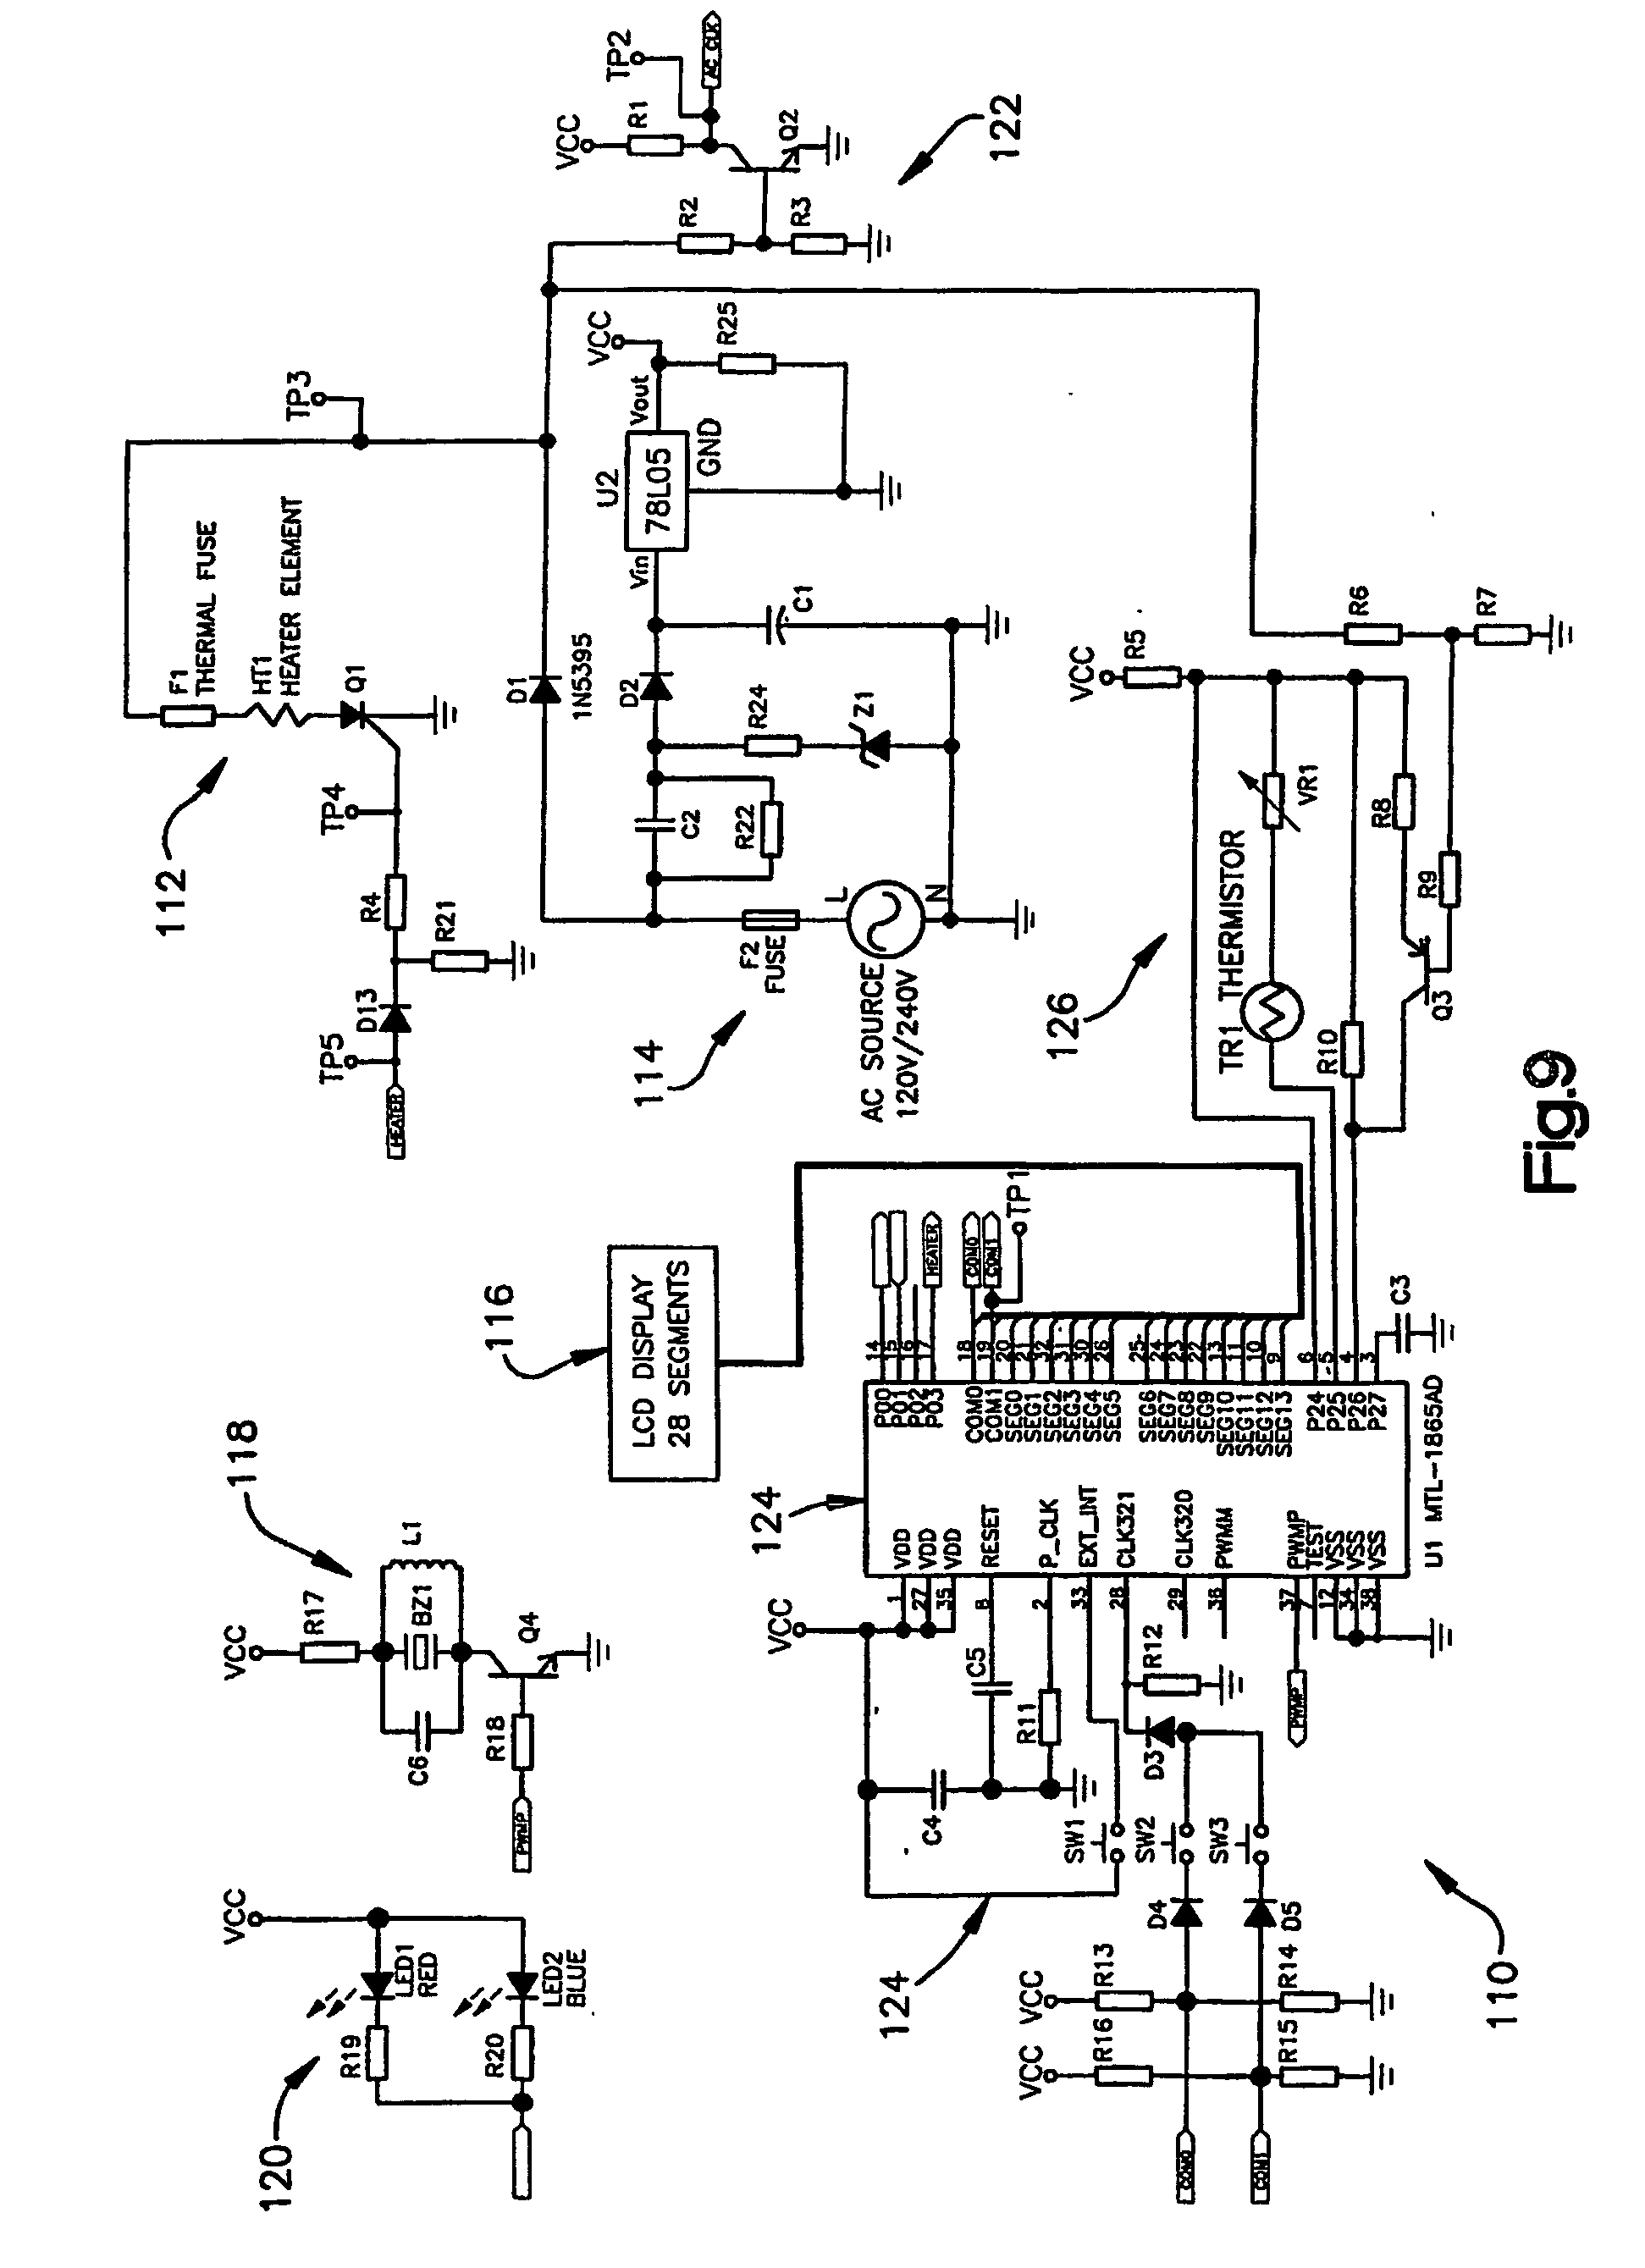 Chevrolet Cruise Control Wiring Diagram as well Outside Air Temperature Sensor Location additionally Corvette Wiring Diagrams Free 1992 also 1971 Corvette Heater And Air Conditioning Wire Schematic in addition 3mtqj 97 Chevy Carb 350 5 7 Efi System Replaced. on tac module 2004 chevy truck wiring diagram